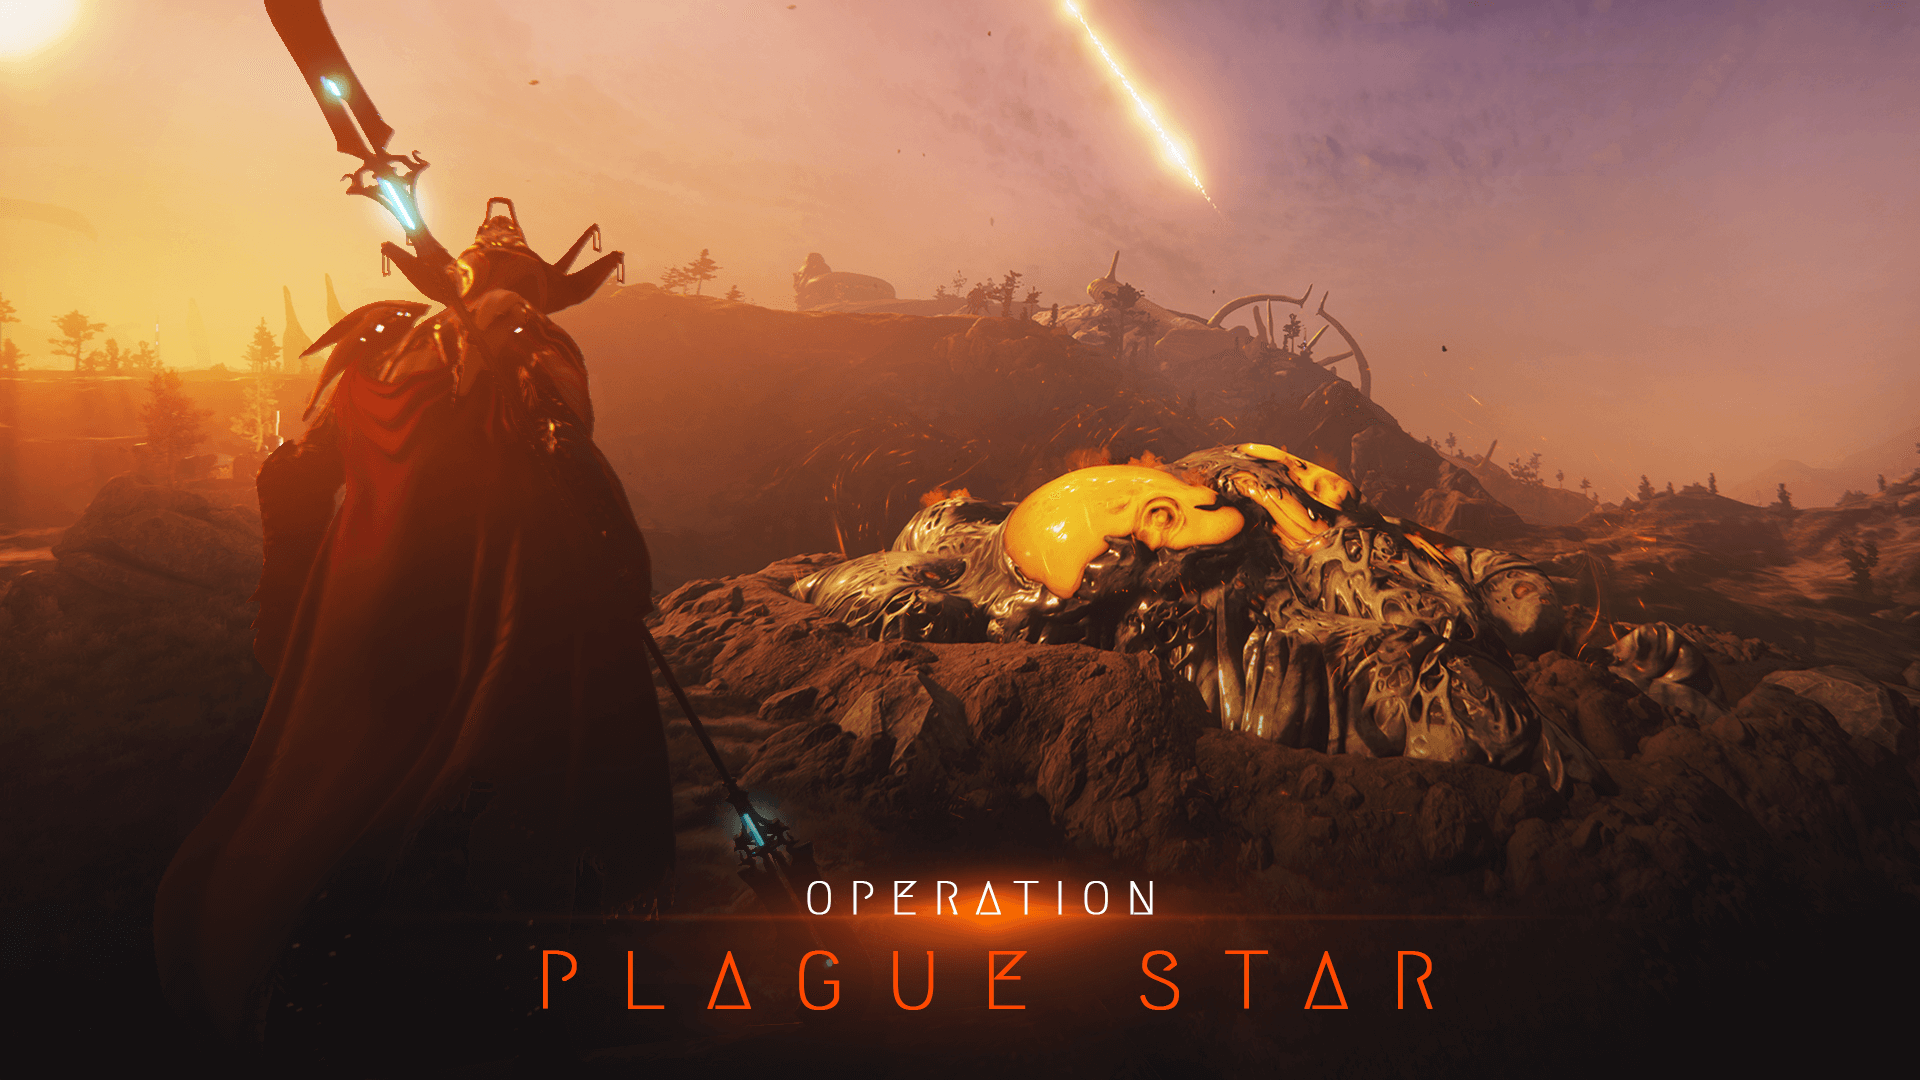 OperationPlagueStar_Keyart.png&key=eb56c